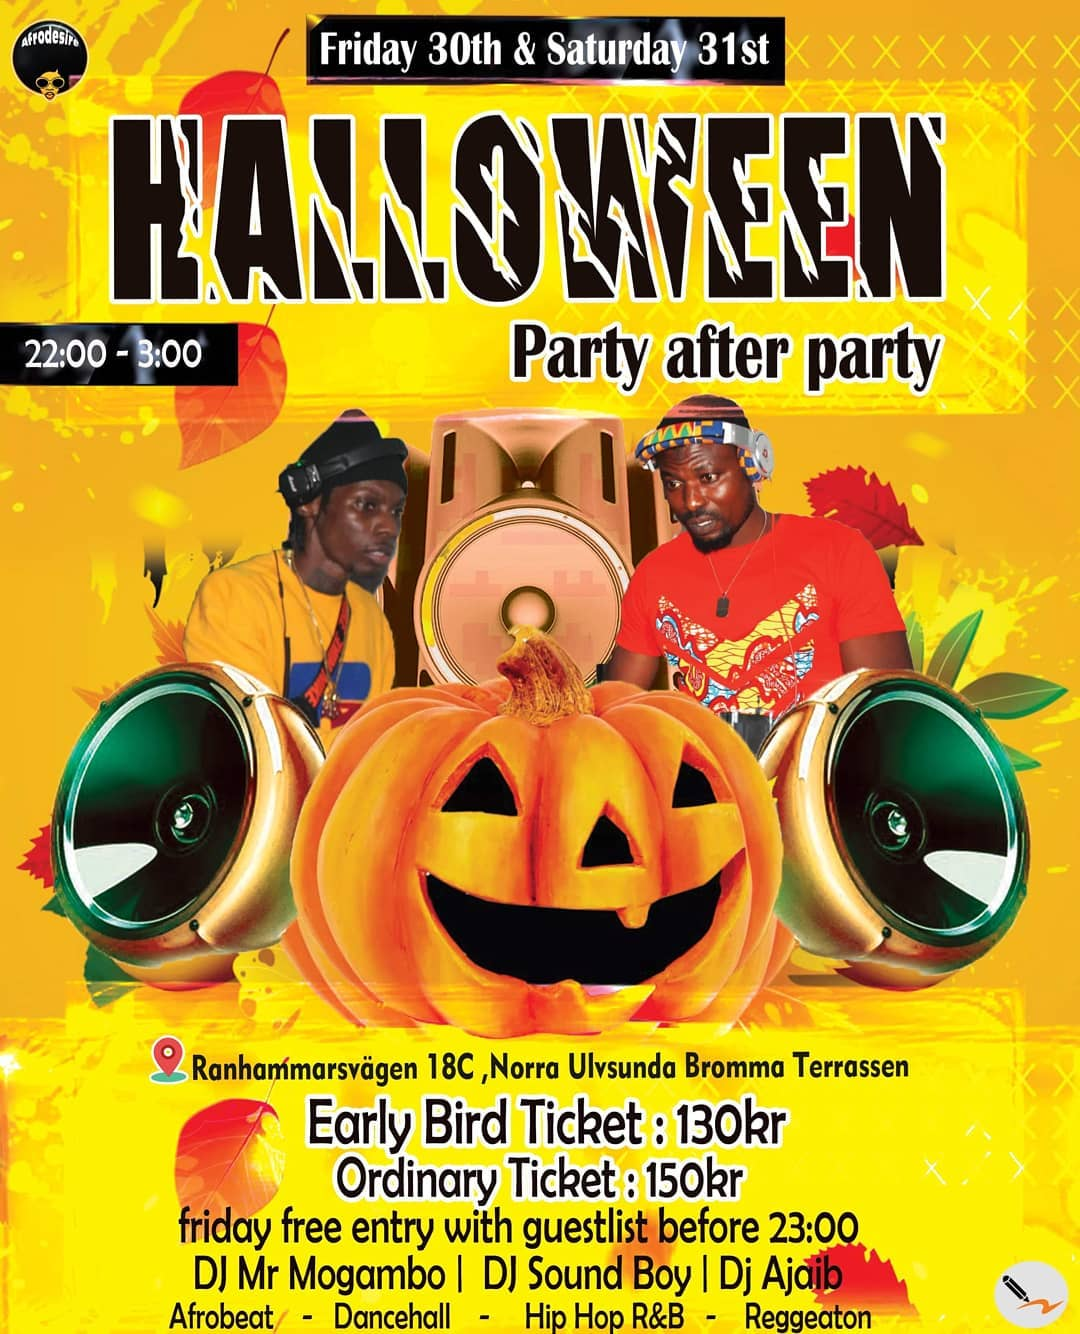 KLUBB: Halloween - Party after party - Stockholm